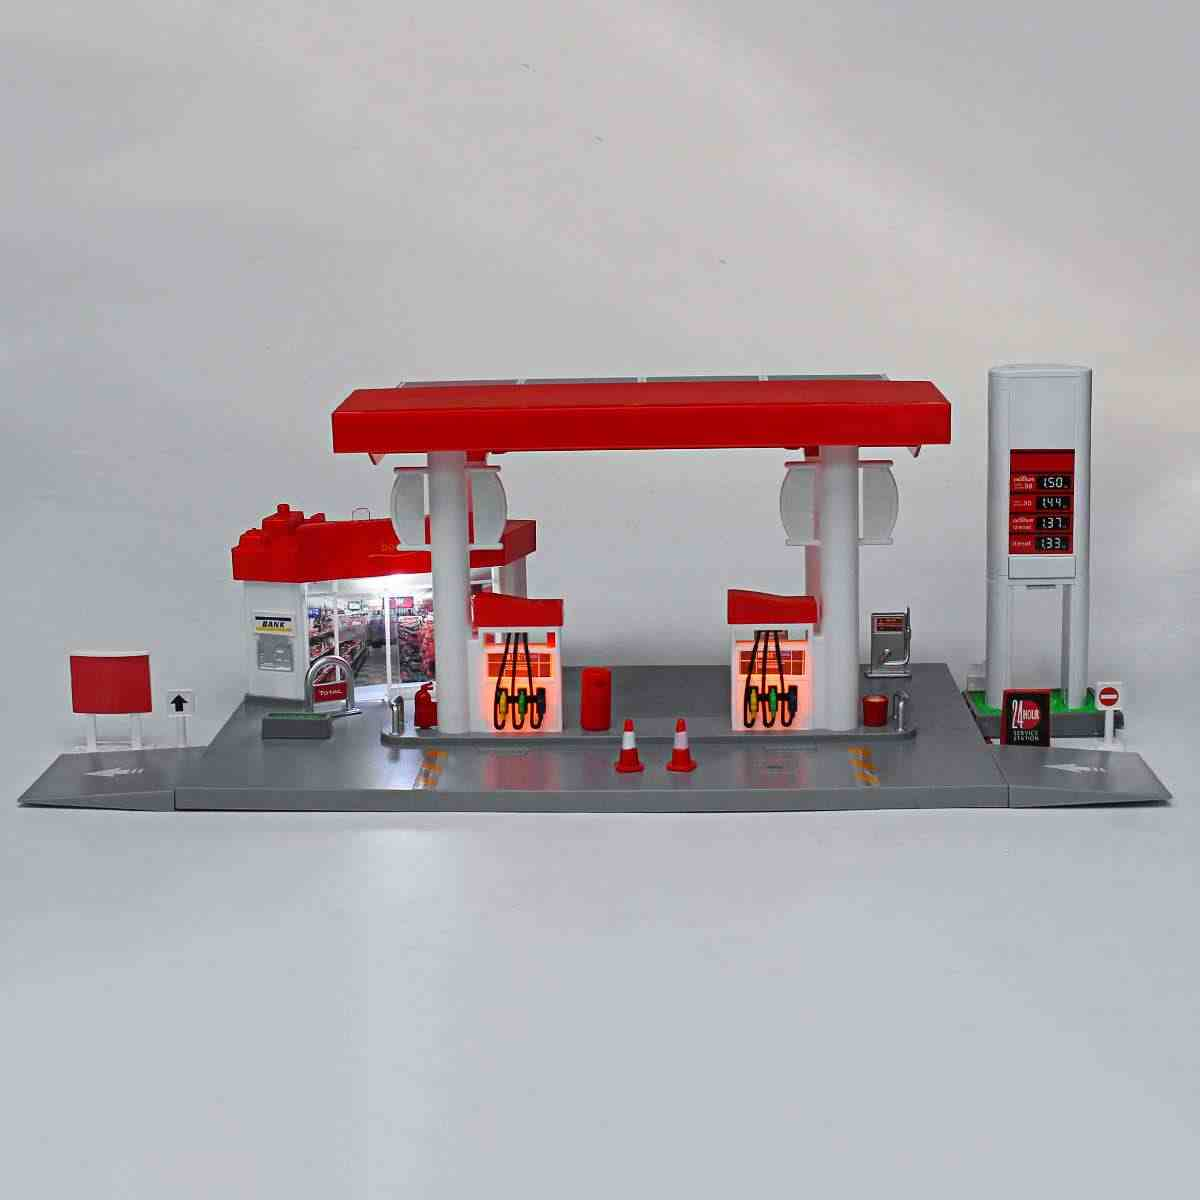 Model Toys Gas Petrol Service Station with 1:64 Diecast Toy Car Miniature Replica Playset New Arrival